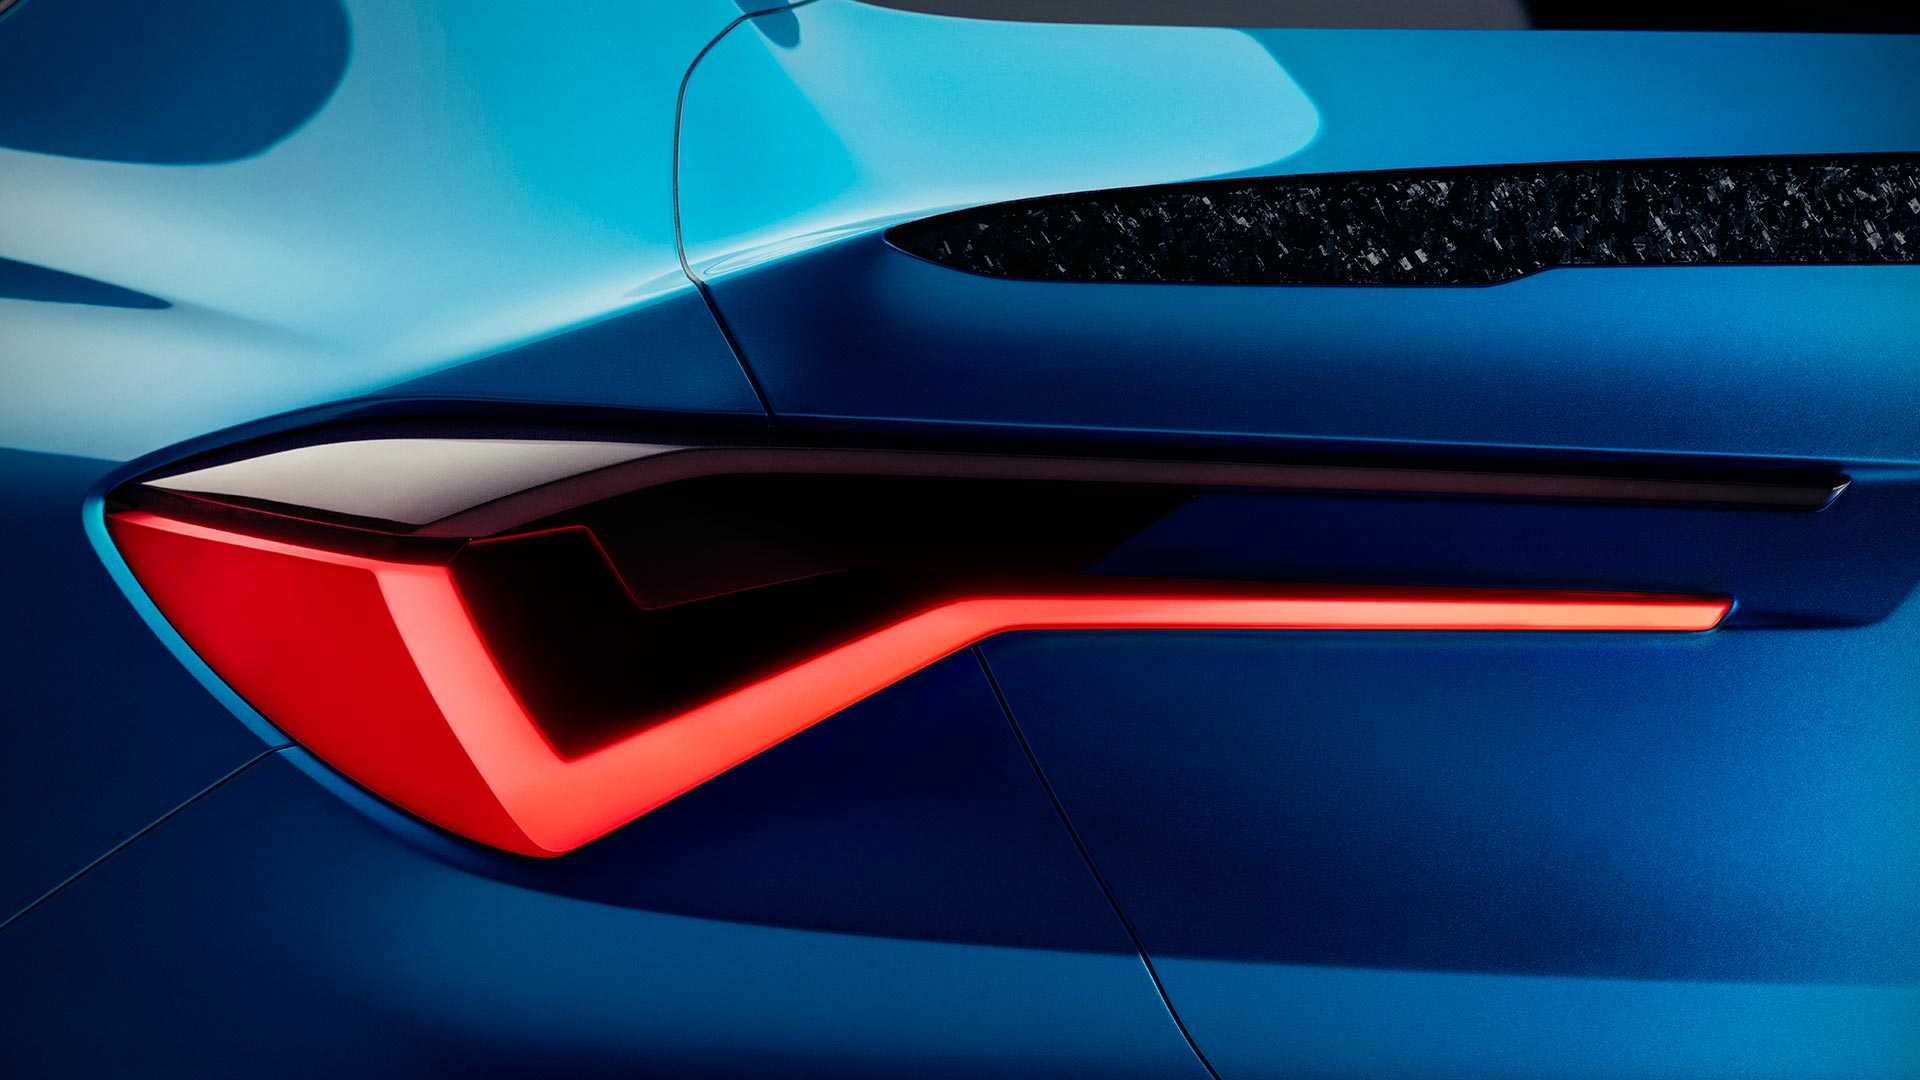 2019 Acura Type S Concept Tail Light Wallpapers (14)